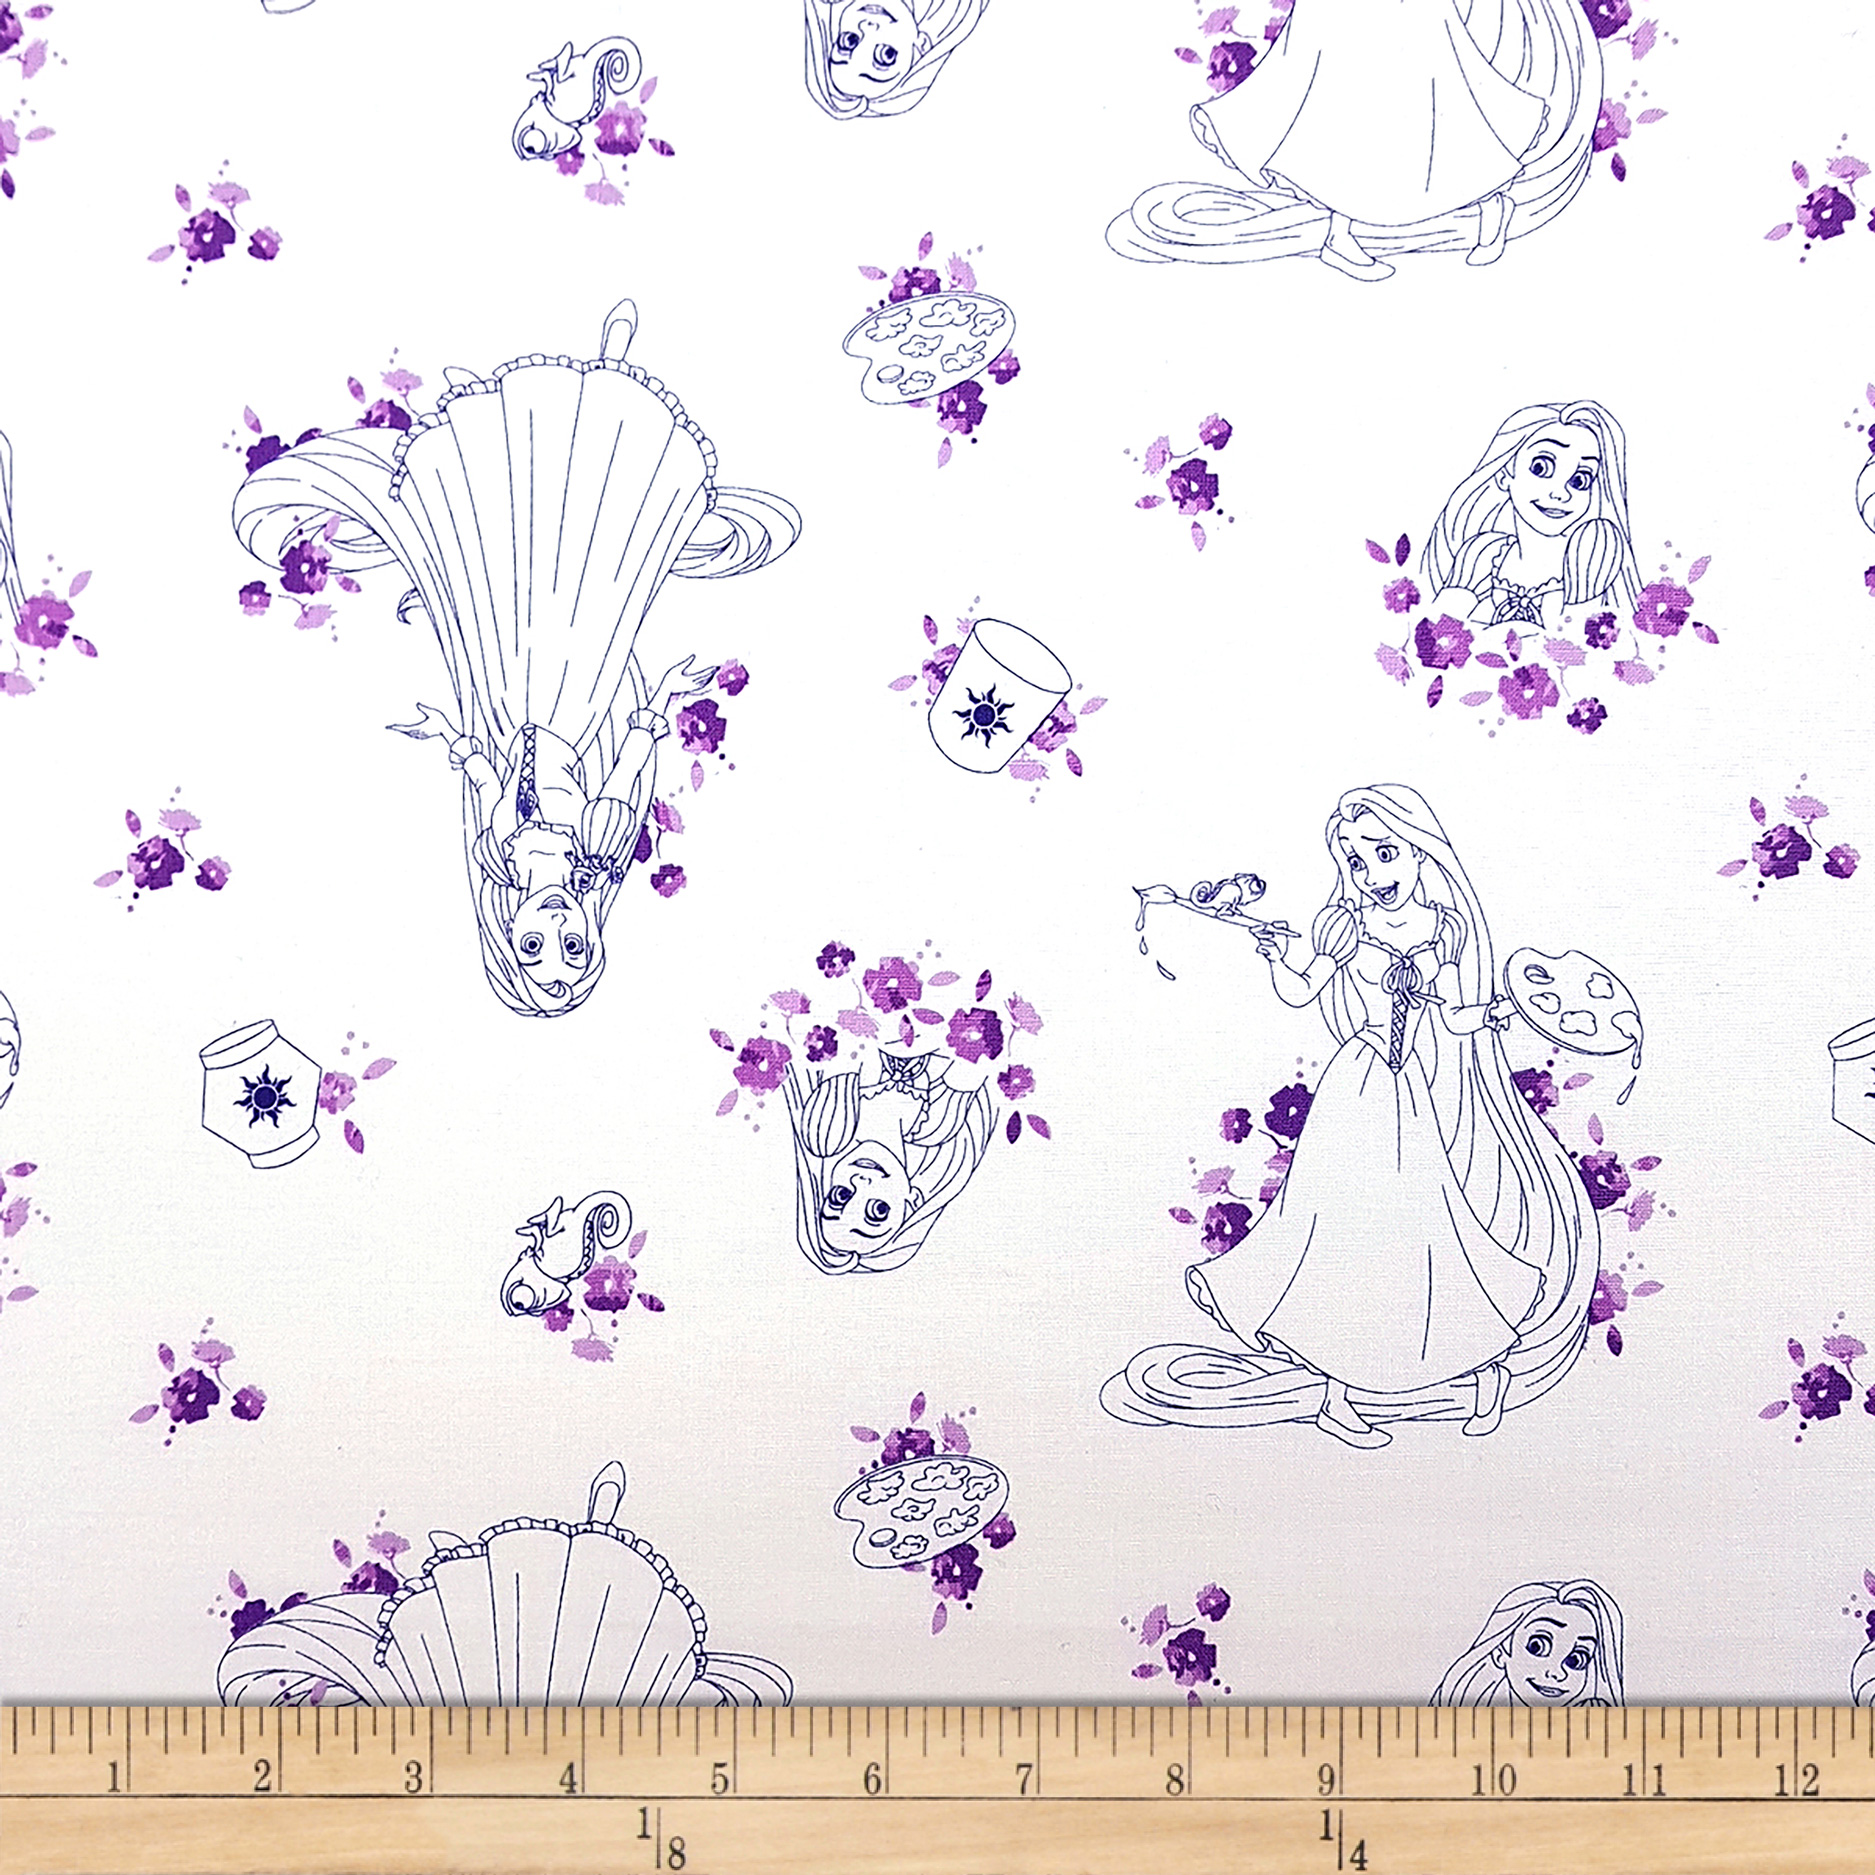 Disney Forever Princess Rapunzel Toile in Purple Fabric